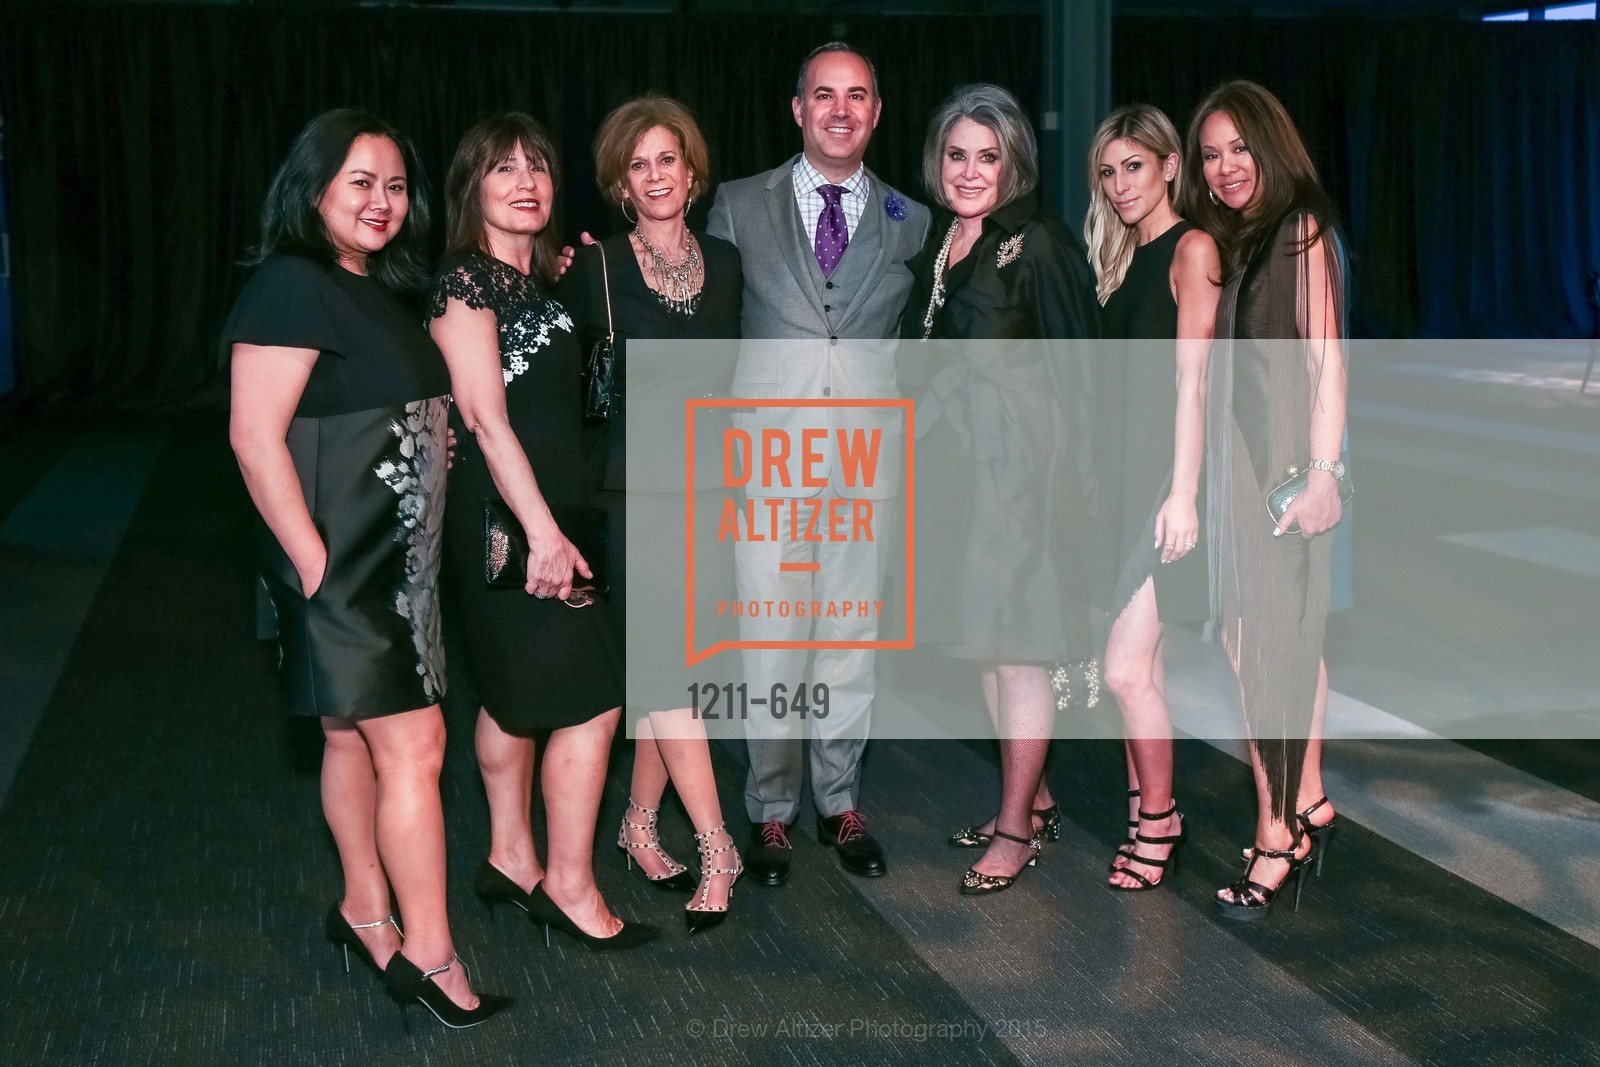 Jamie Wong, Joanna Haber, Mimi Bushberg, Robert Arnold-Kraft, Susan Paganini, Danielle Klein, Serena McNamee, Fashion Forward: An Evening with Erdem presented by SF Opera Guild and Saks Fifth Avenue, Pier 27. Pier 27, The Embarcadero, March 25th, 2015,Drew Altizer, Drew Altizer Photography, full-service agency, private events, San Francisco photographer, photographer california